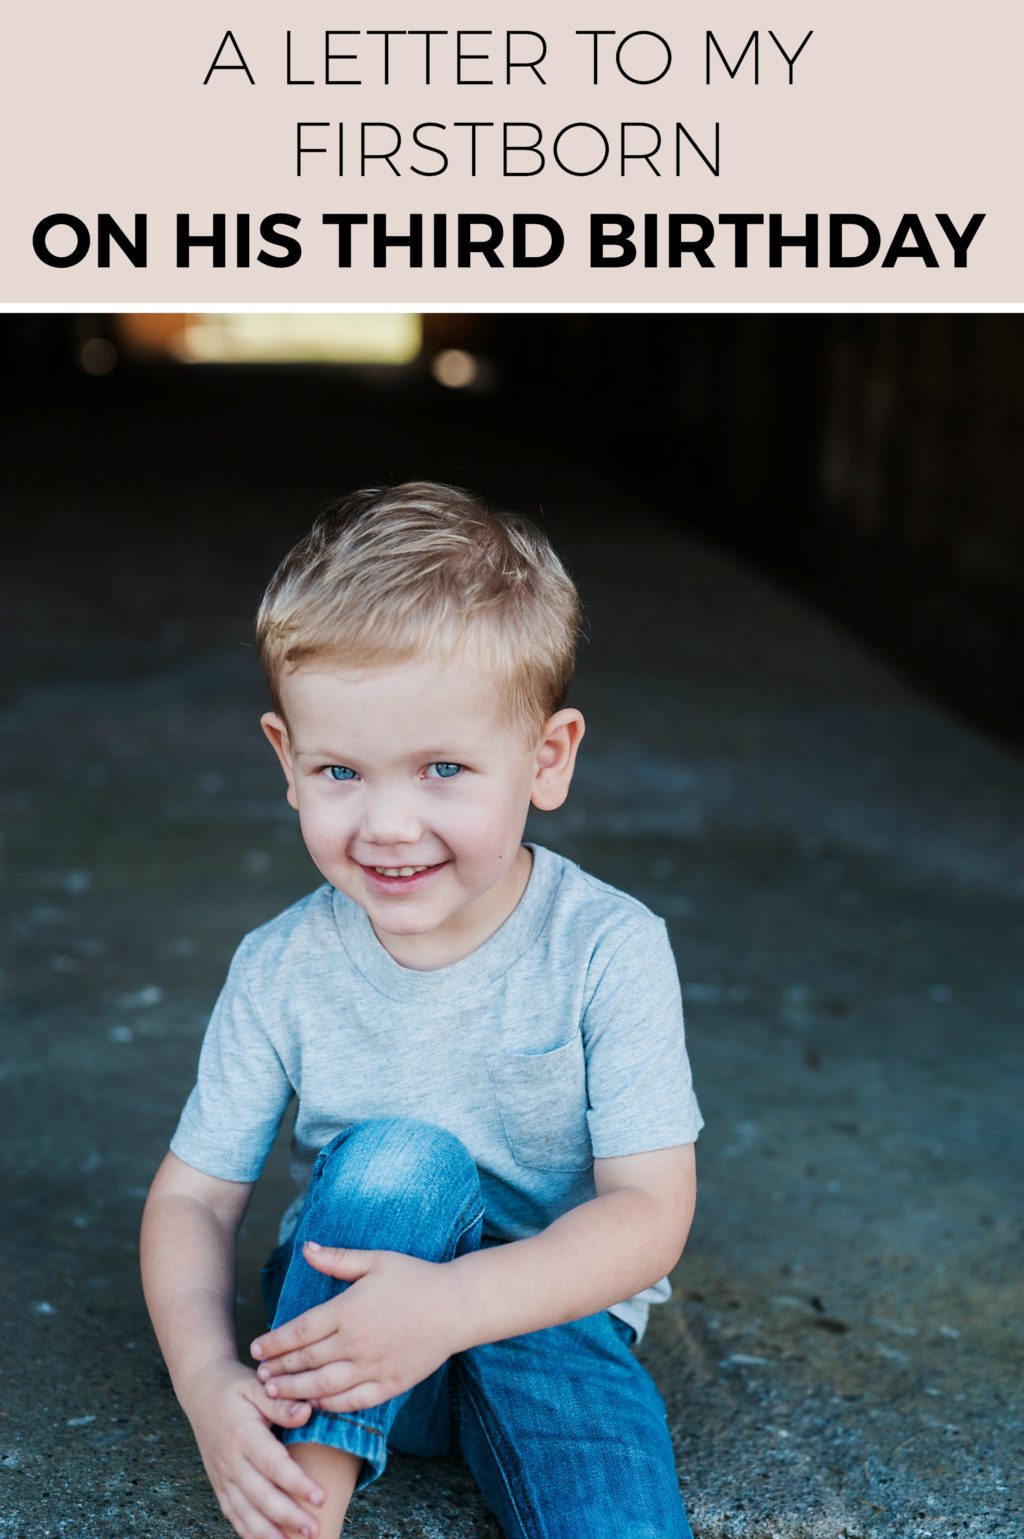 My firstborn is three!  Today I'm writing him an open letter.